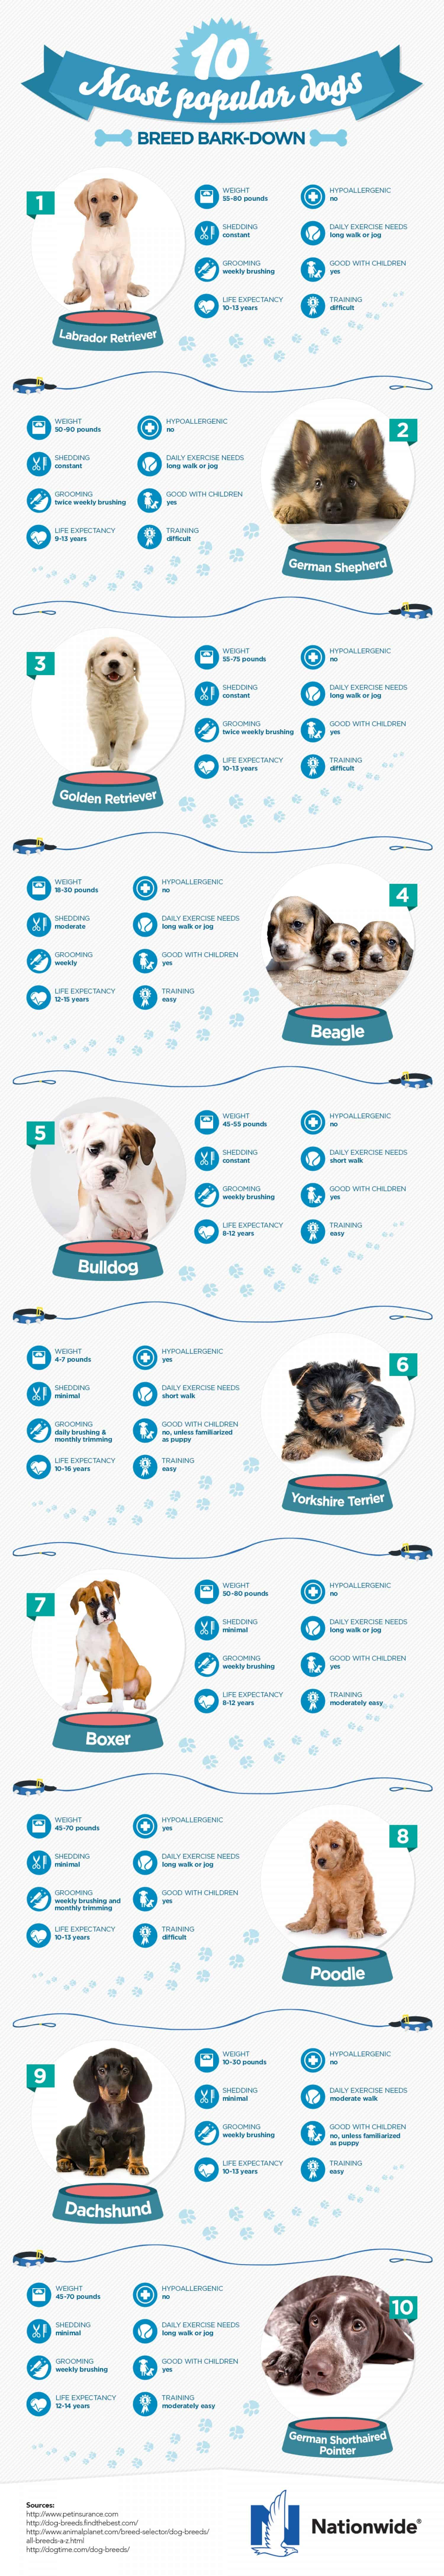 Most Popular Dog Breeds Infographic